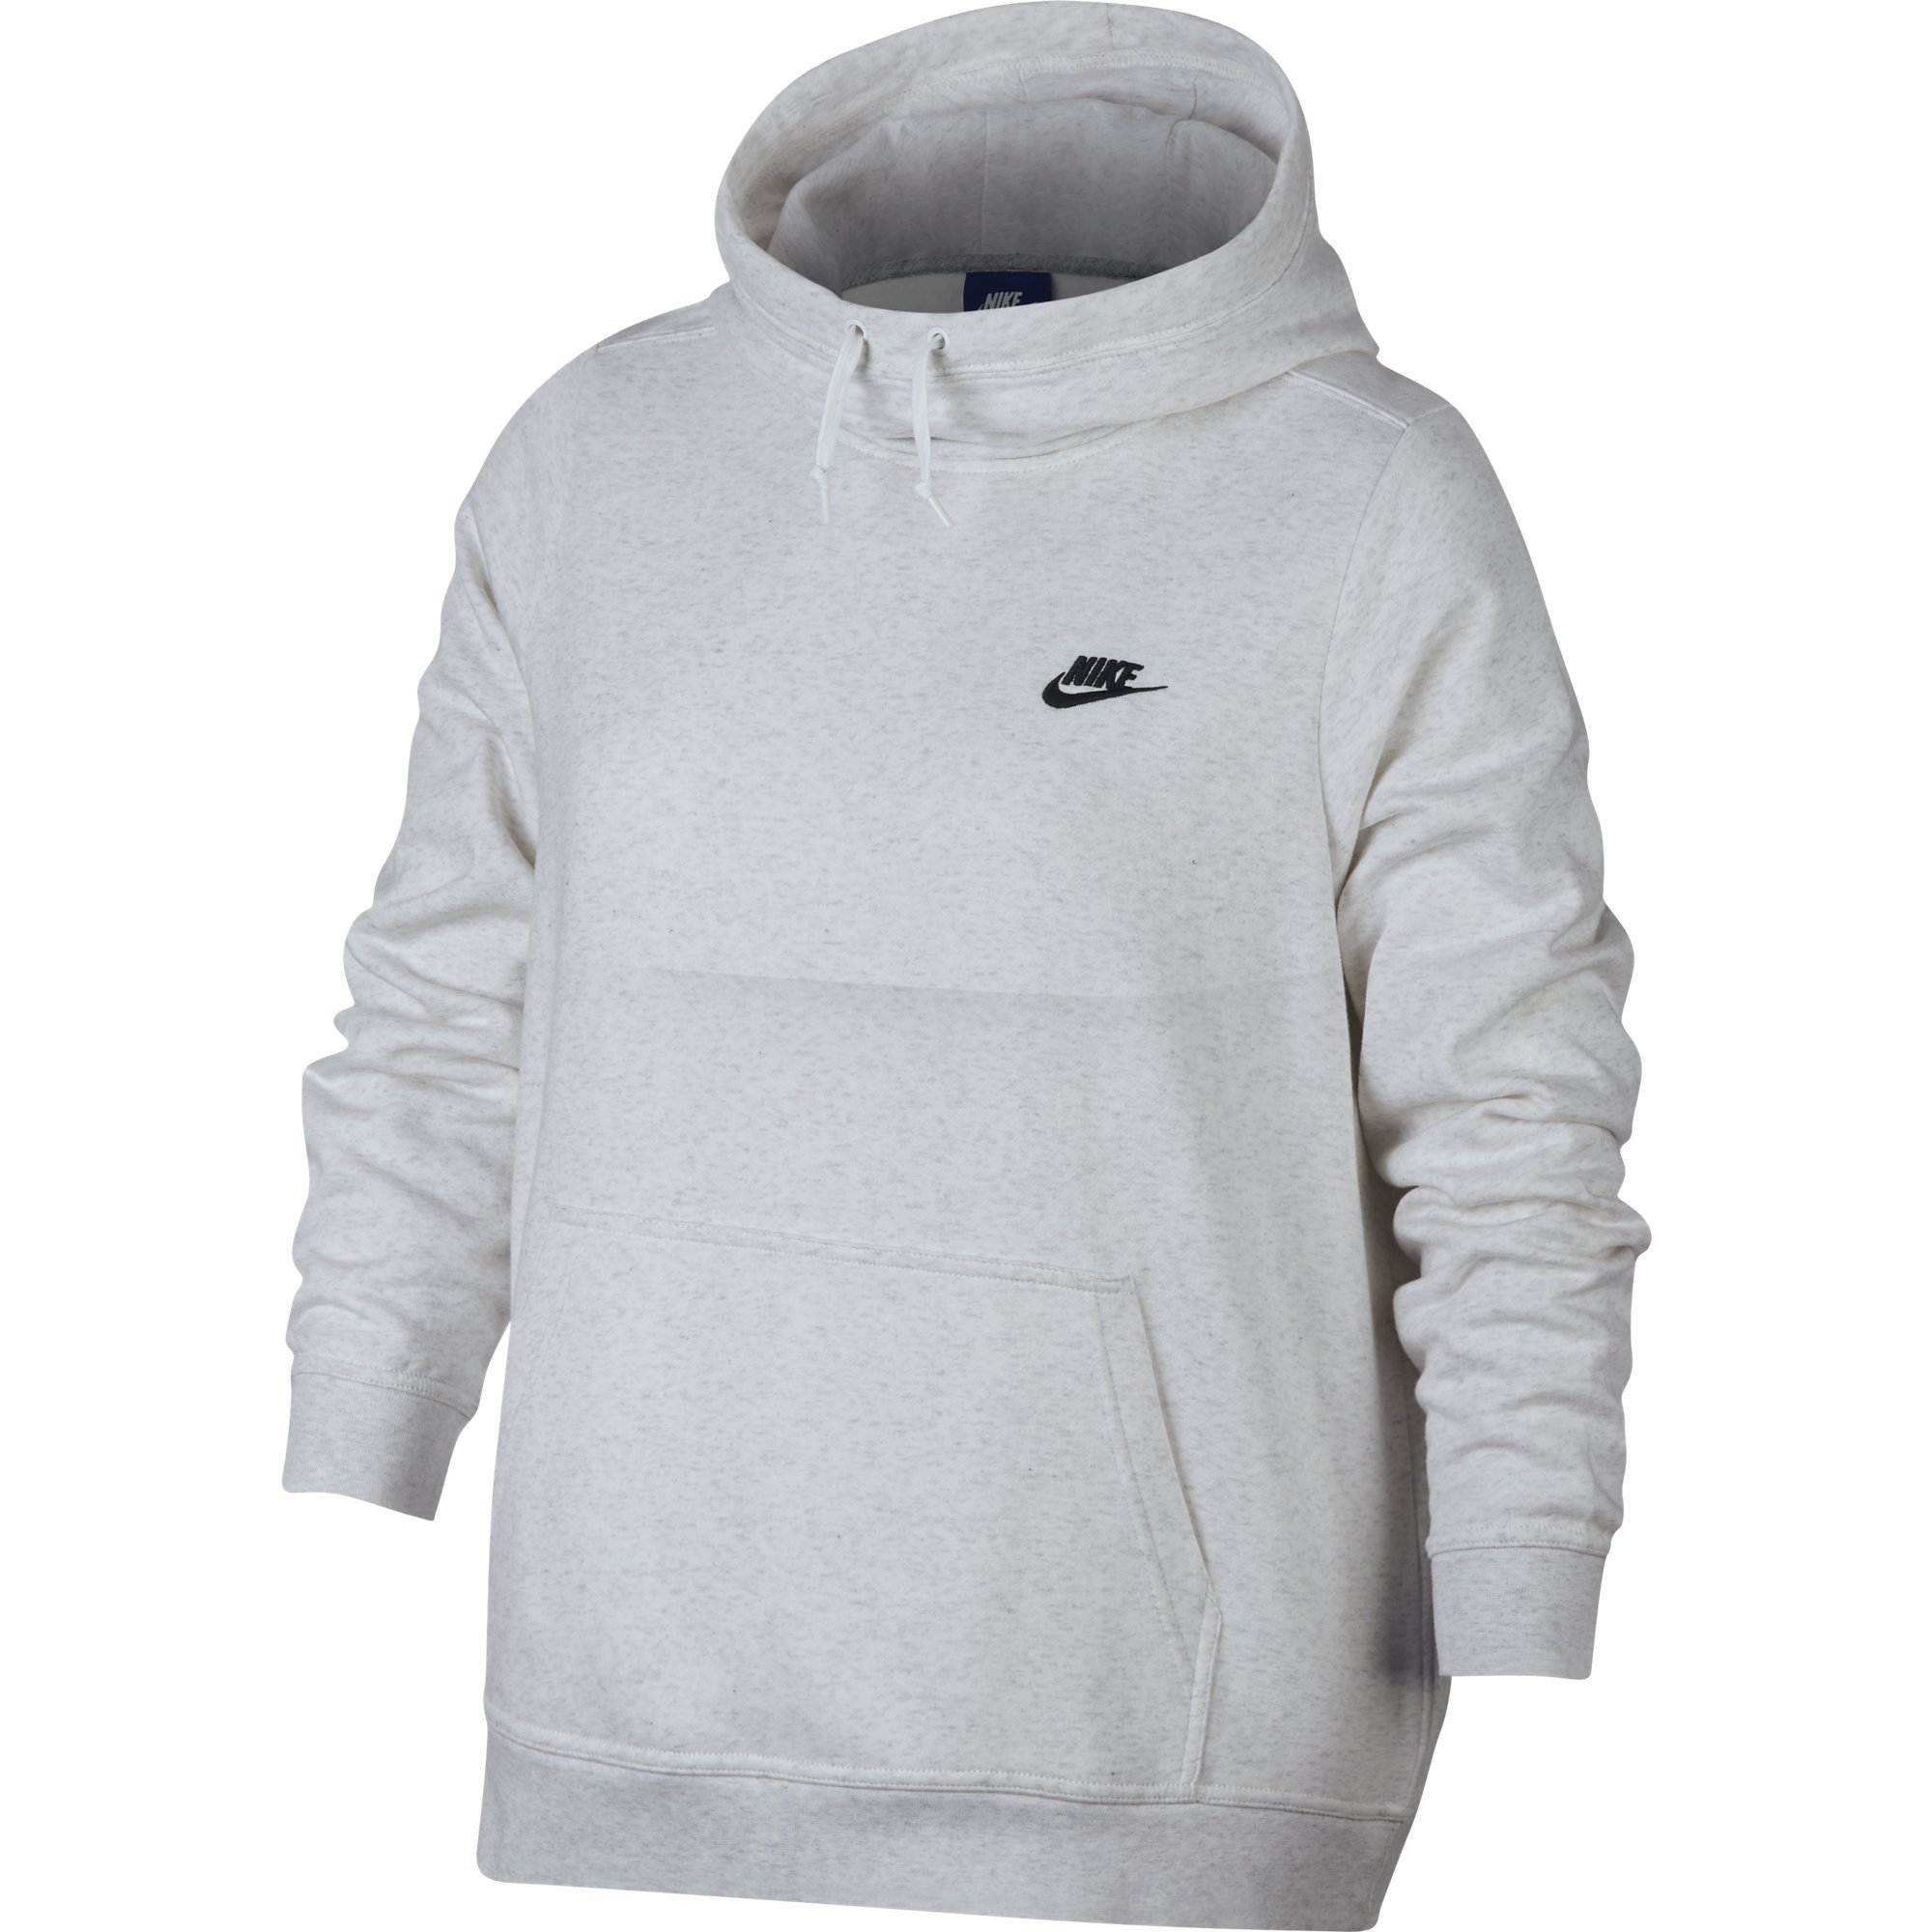 NIKE Sportswear Women's Plus Club Funnel-Neck Hoodie, Birch Heather/Birch Heather/White/Black, 1X